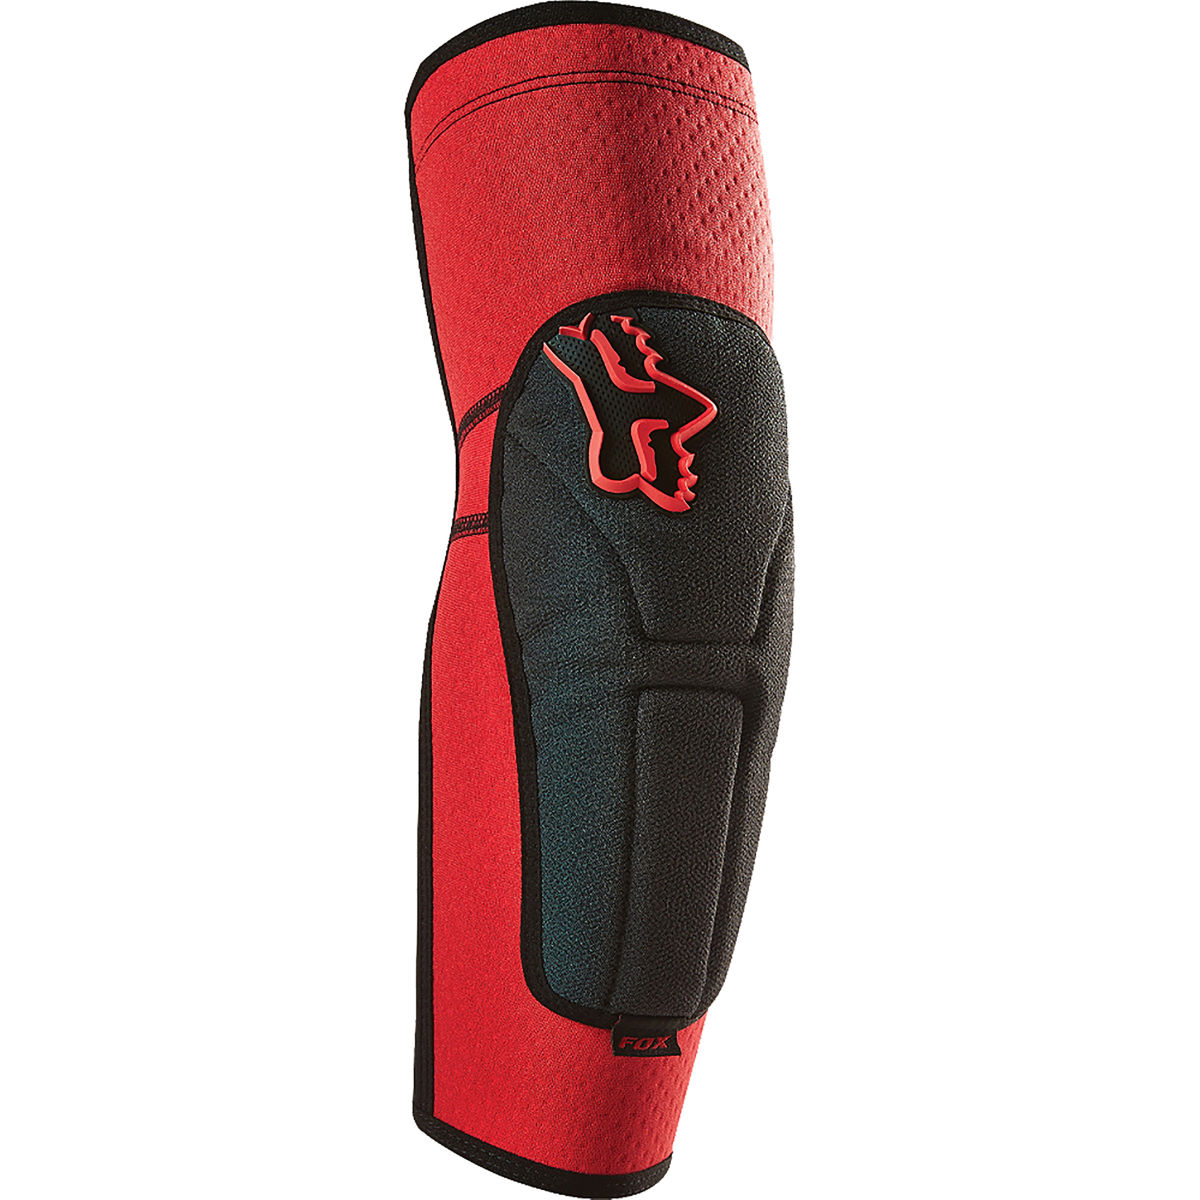 Fox Racing Launch Enduro Elbow Pad   Elbow Pads